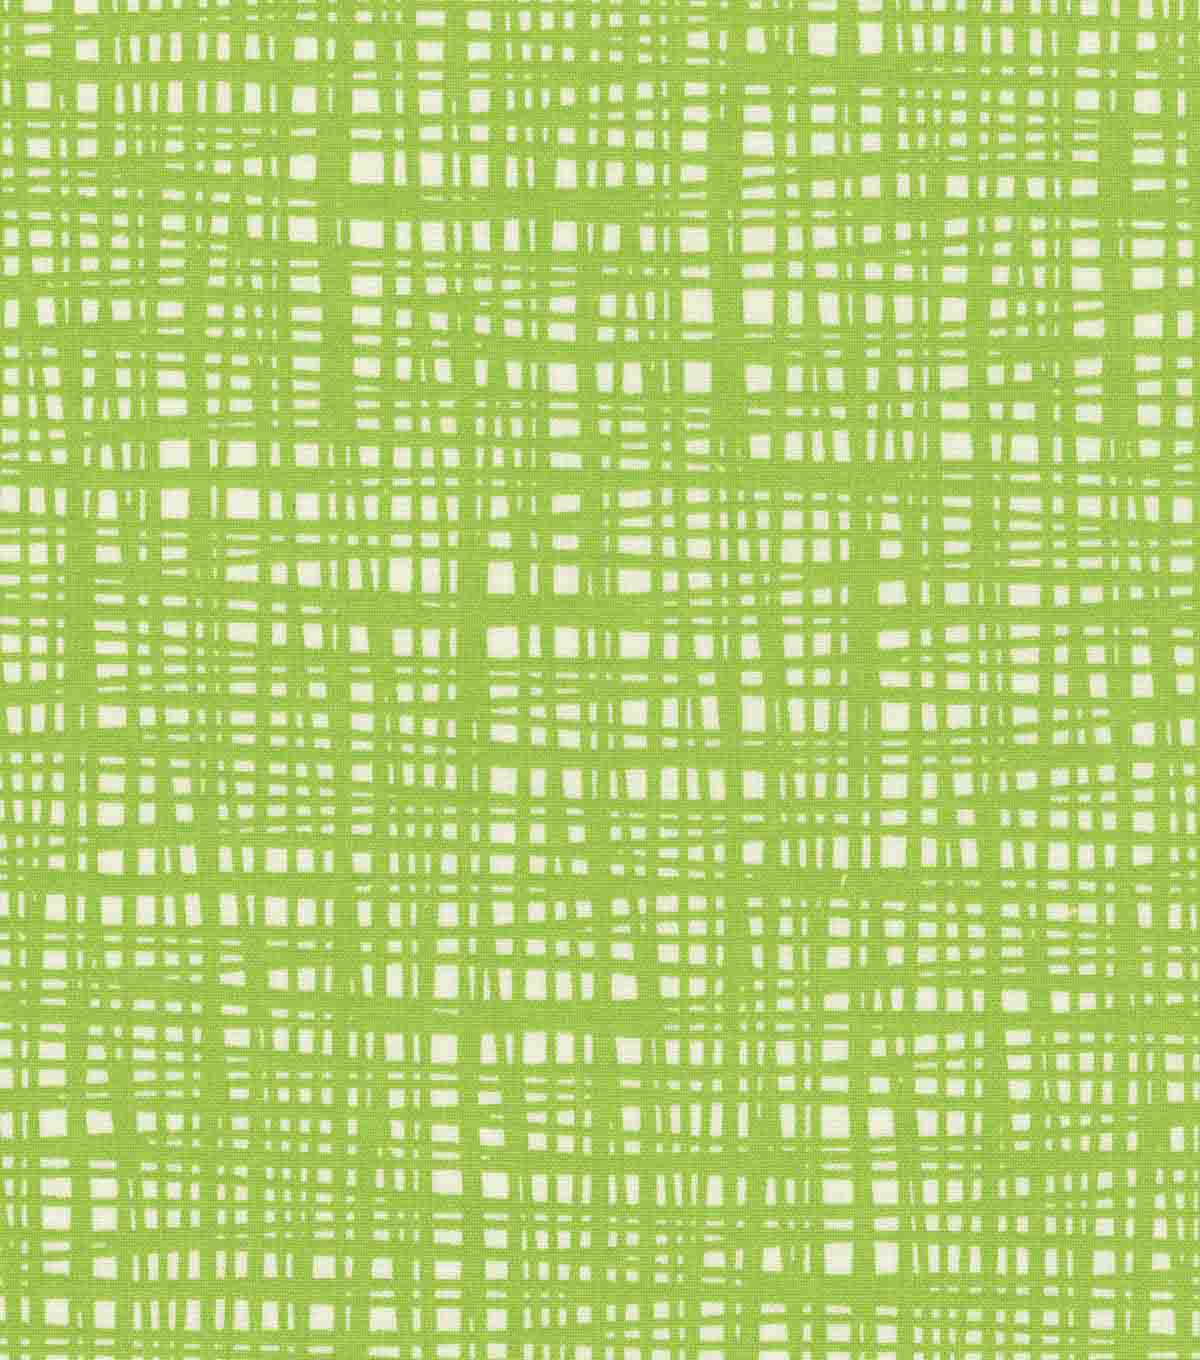 Keepsake Calico Cotton Fabric -Limelight Crossed